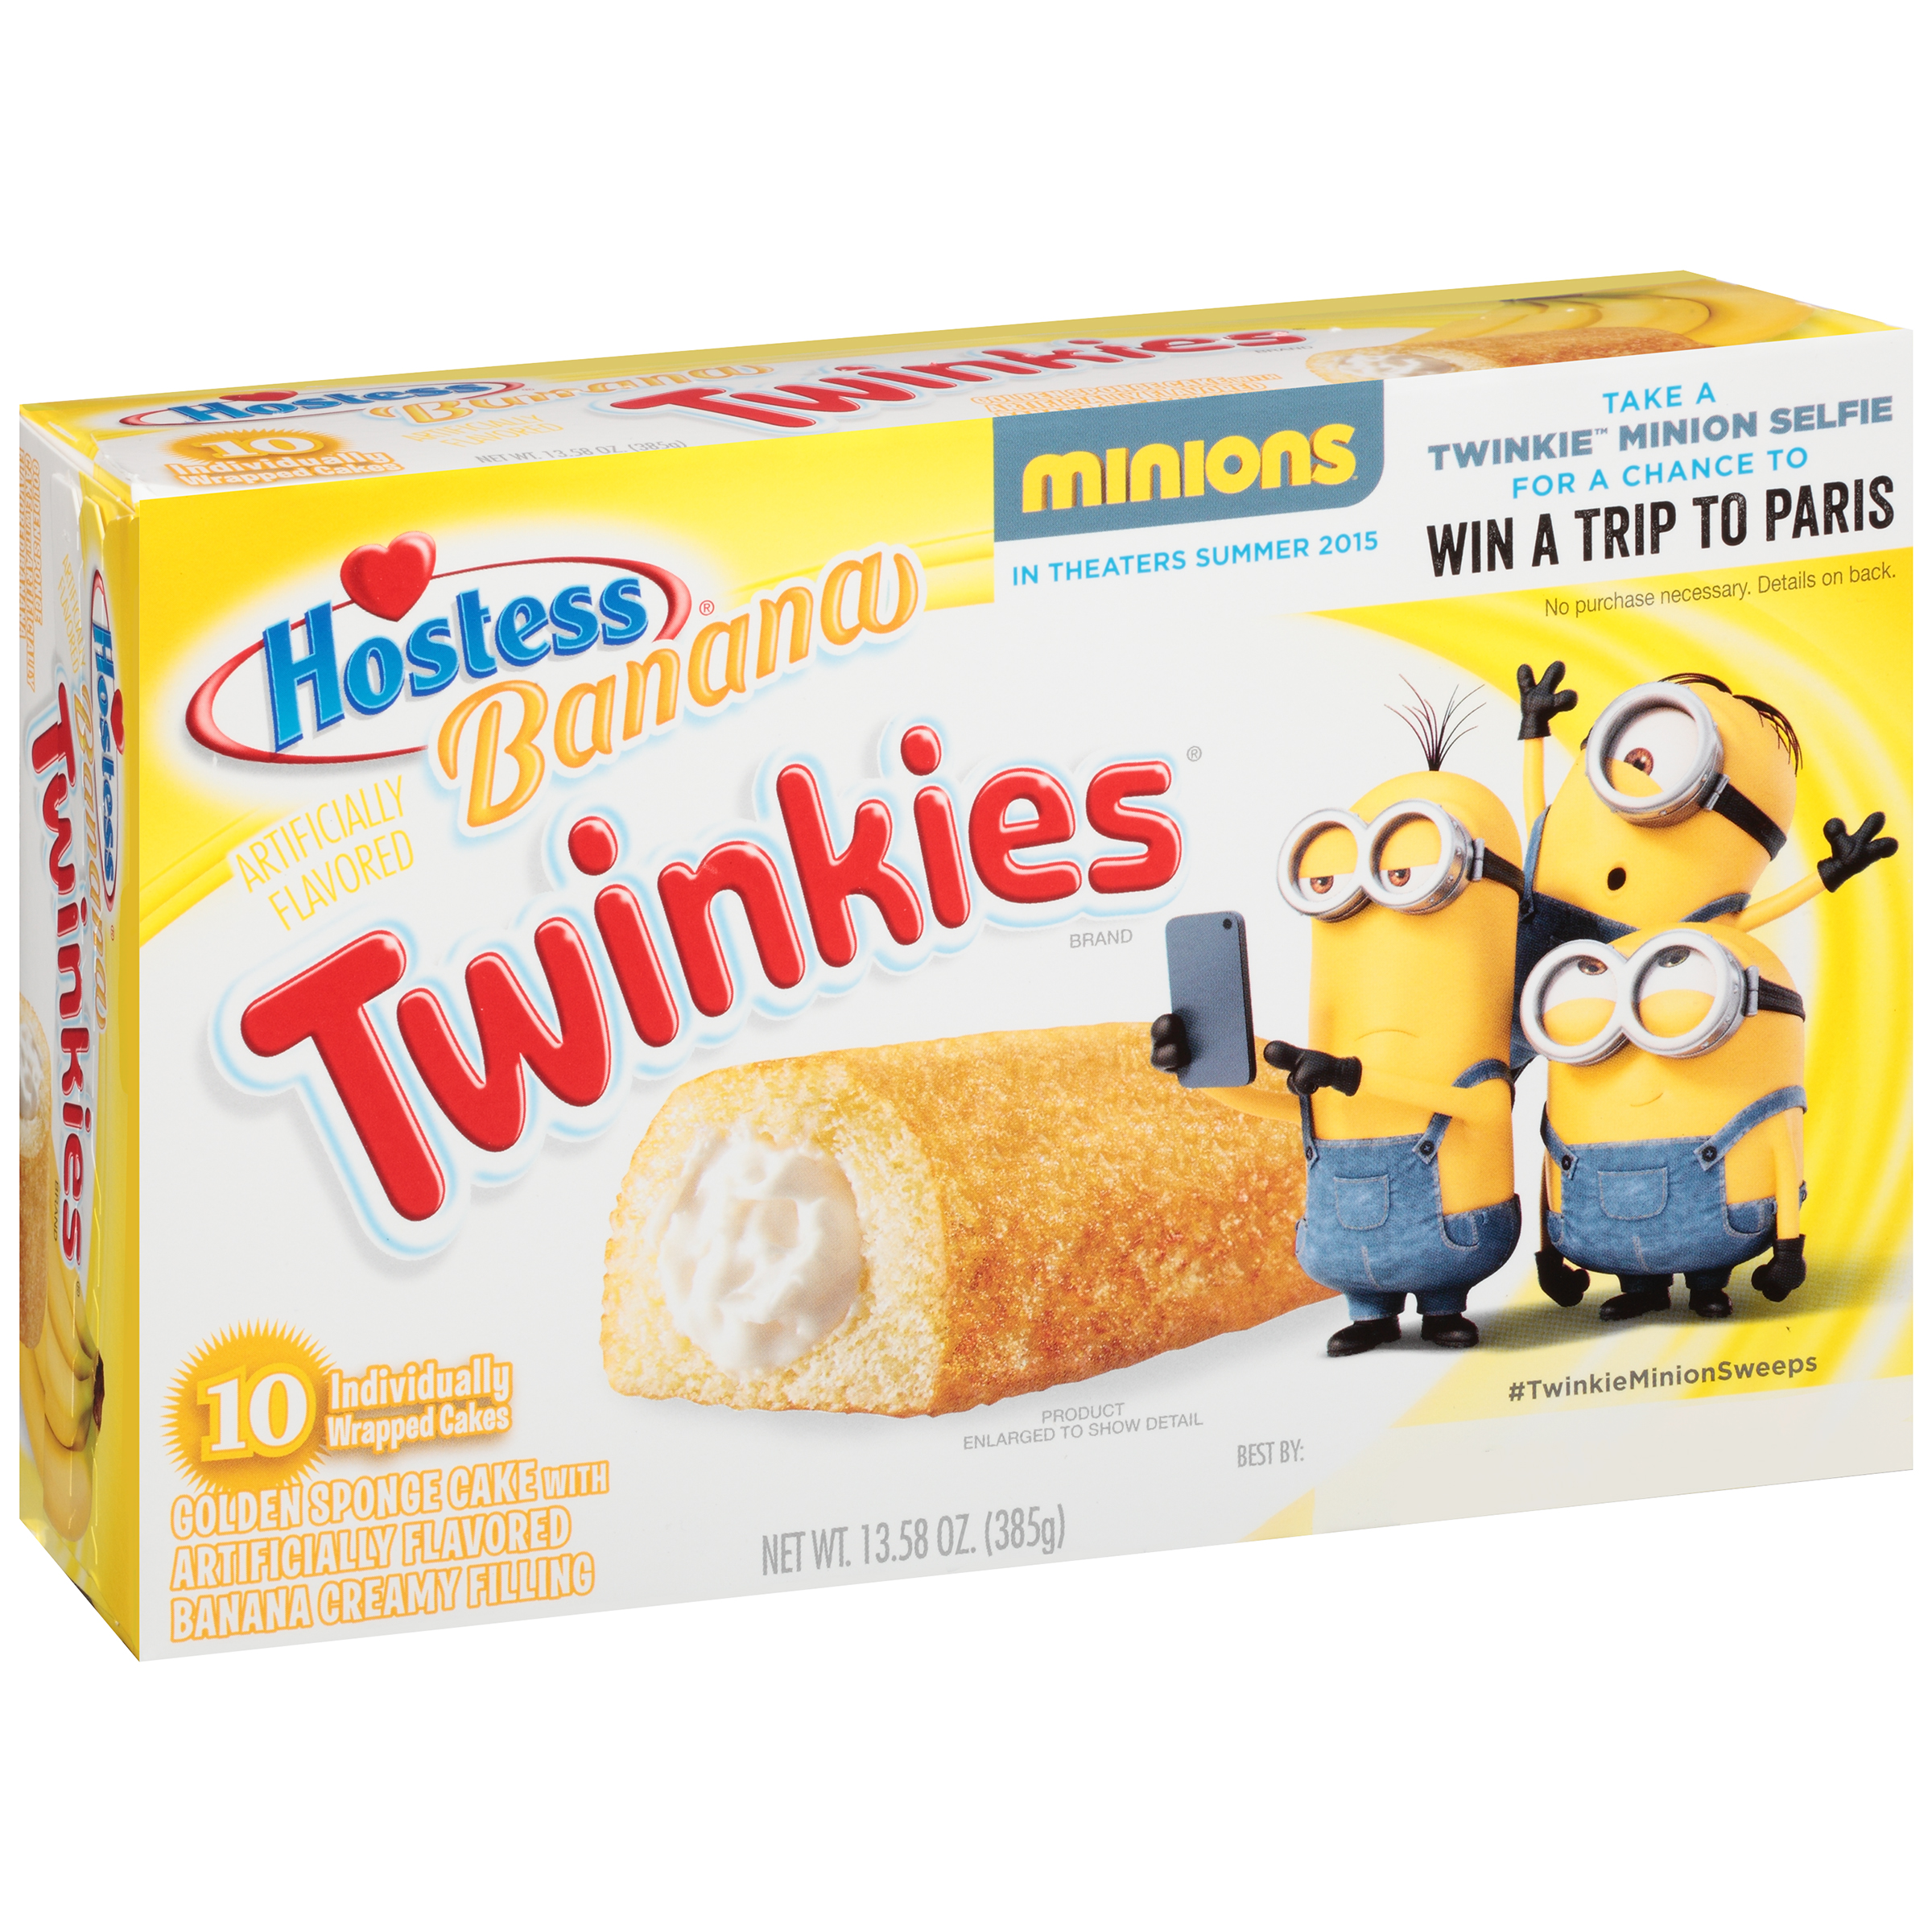 Hostess® Banana Twinkies® 13.58 oz. Package